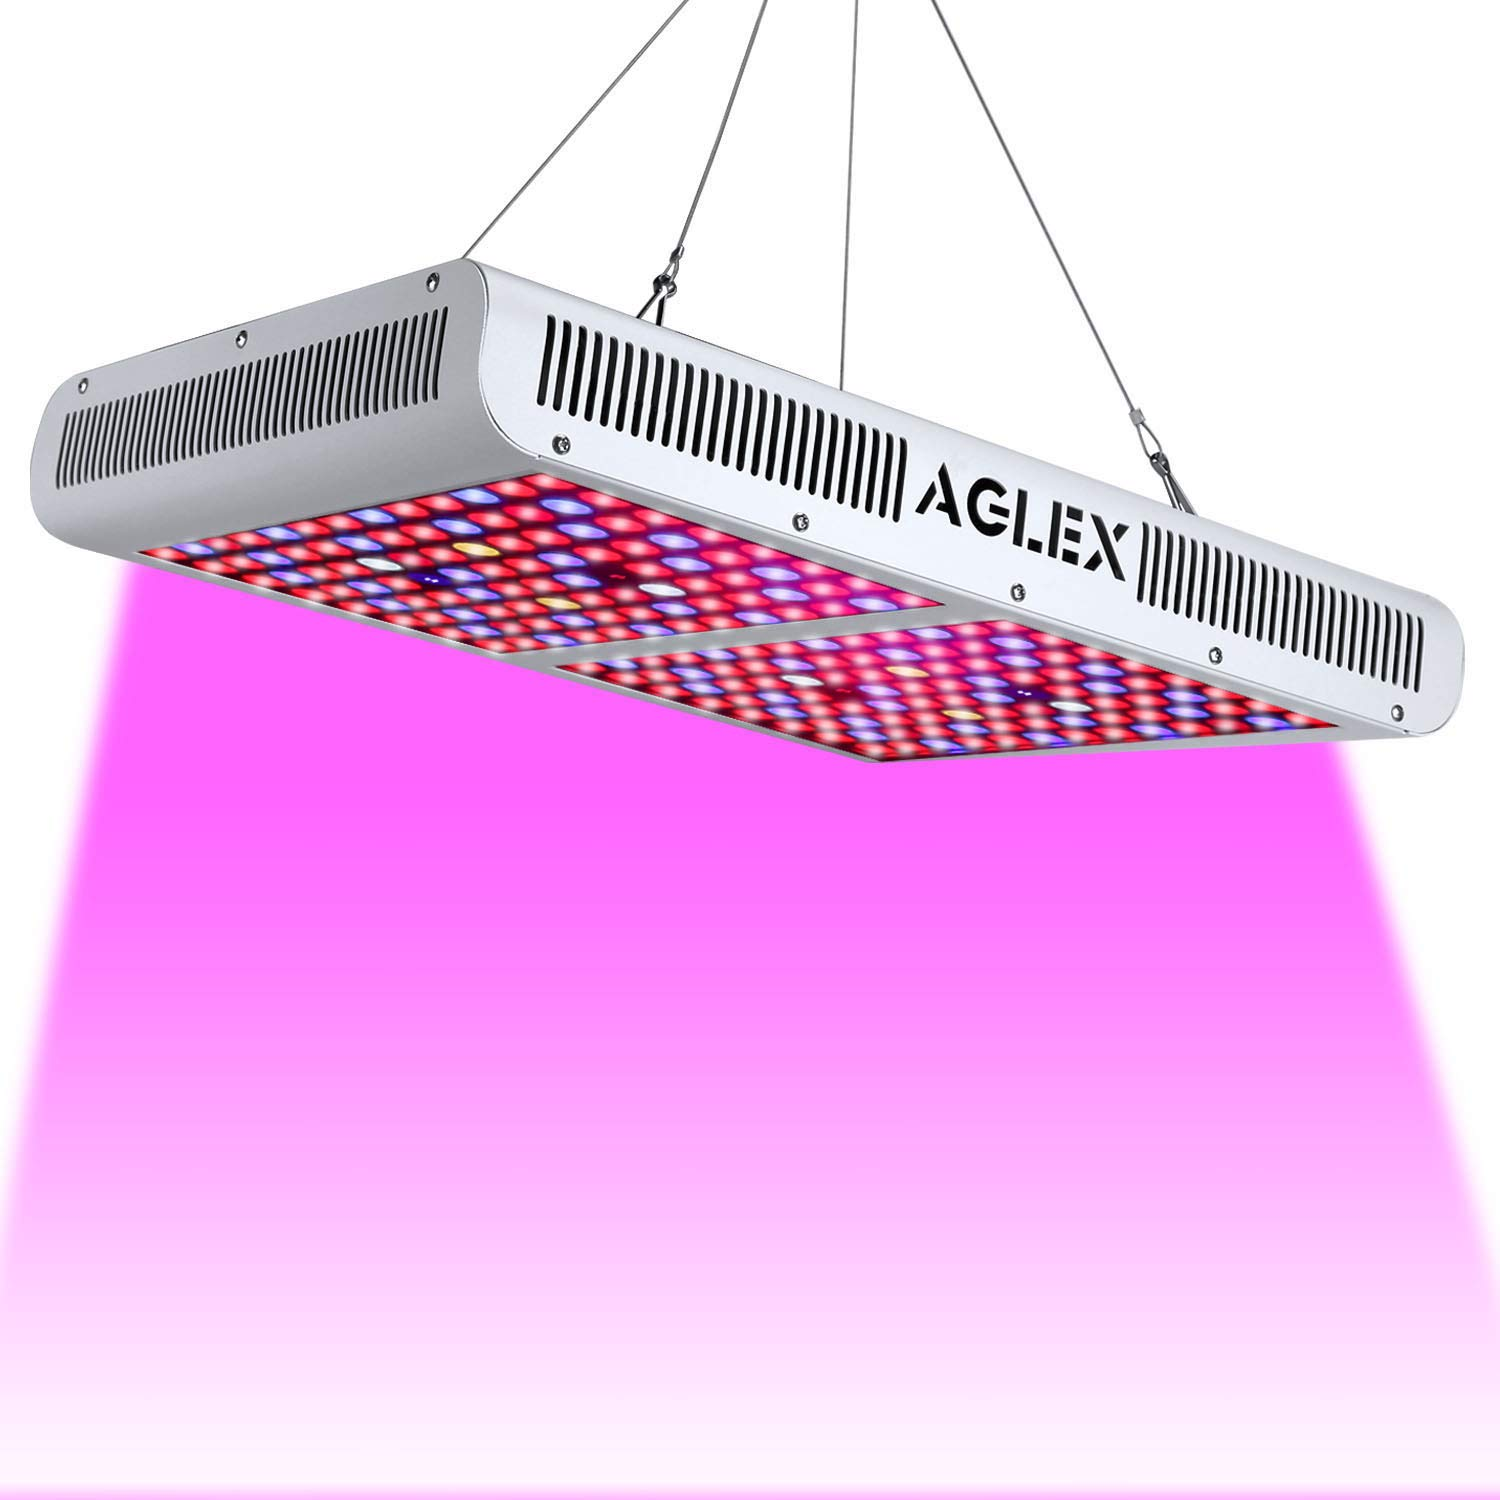 LED Grow Light 2000W Full Spectrum, Reflector Series Growing Lamp with UV & IR White for Indoor Plants Veg and Flower (208pcs LEDs) by AGLEX